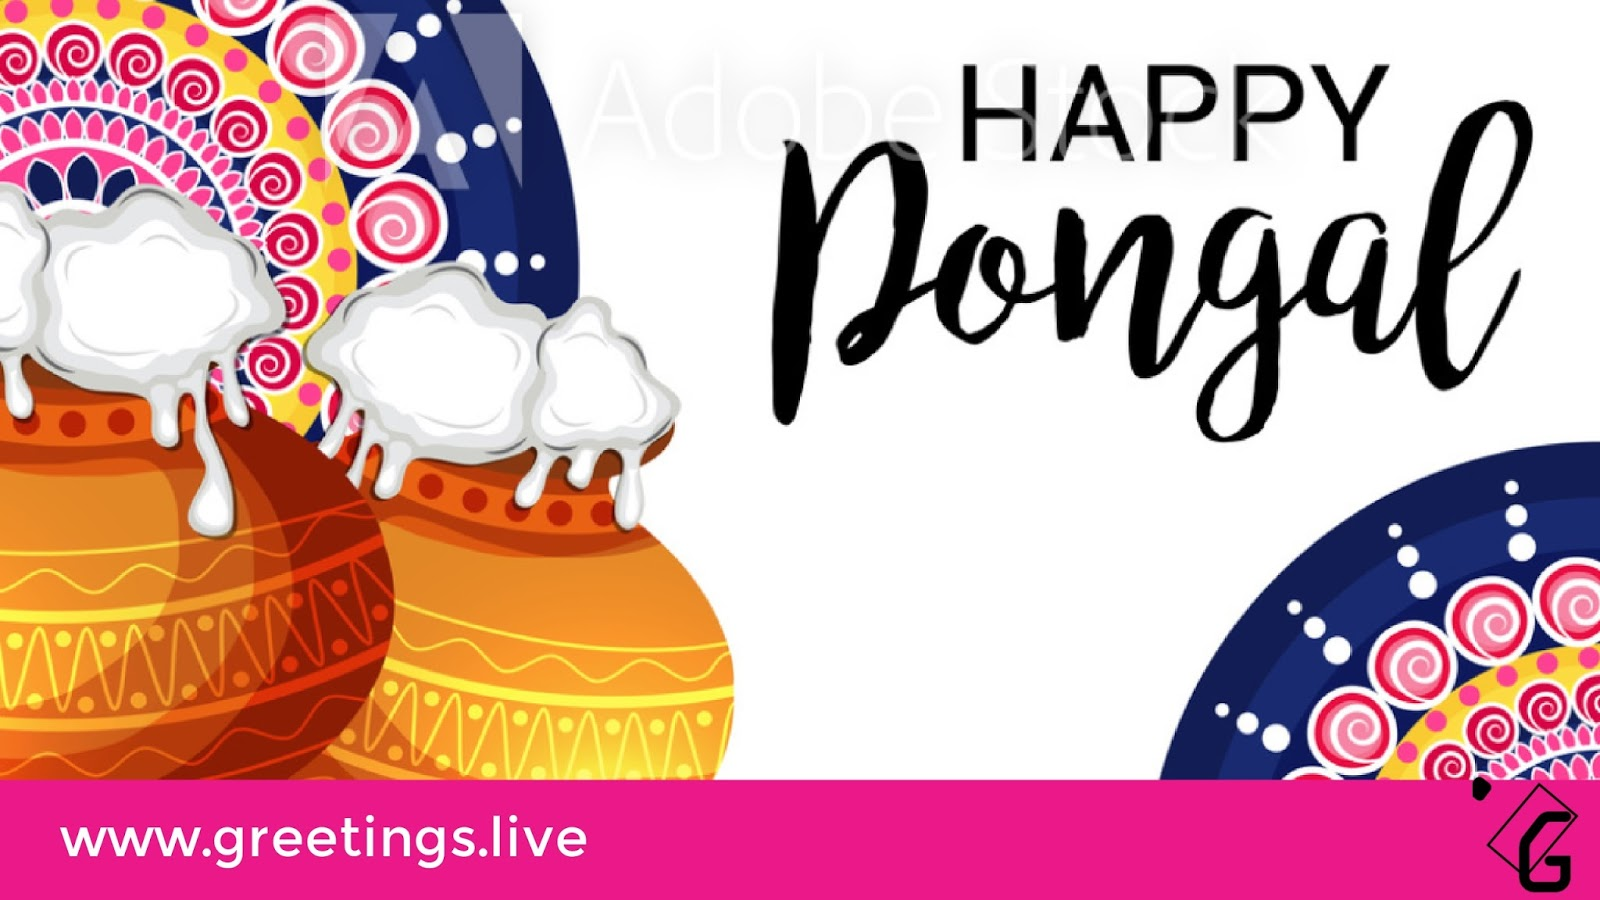 Greetingsve hd images love smile birthday wishes free download happy pongal festival greetings 2018 kristyandbryce Images